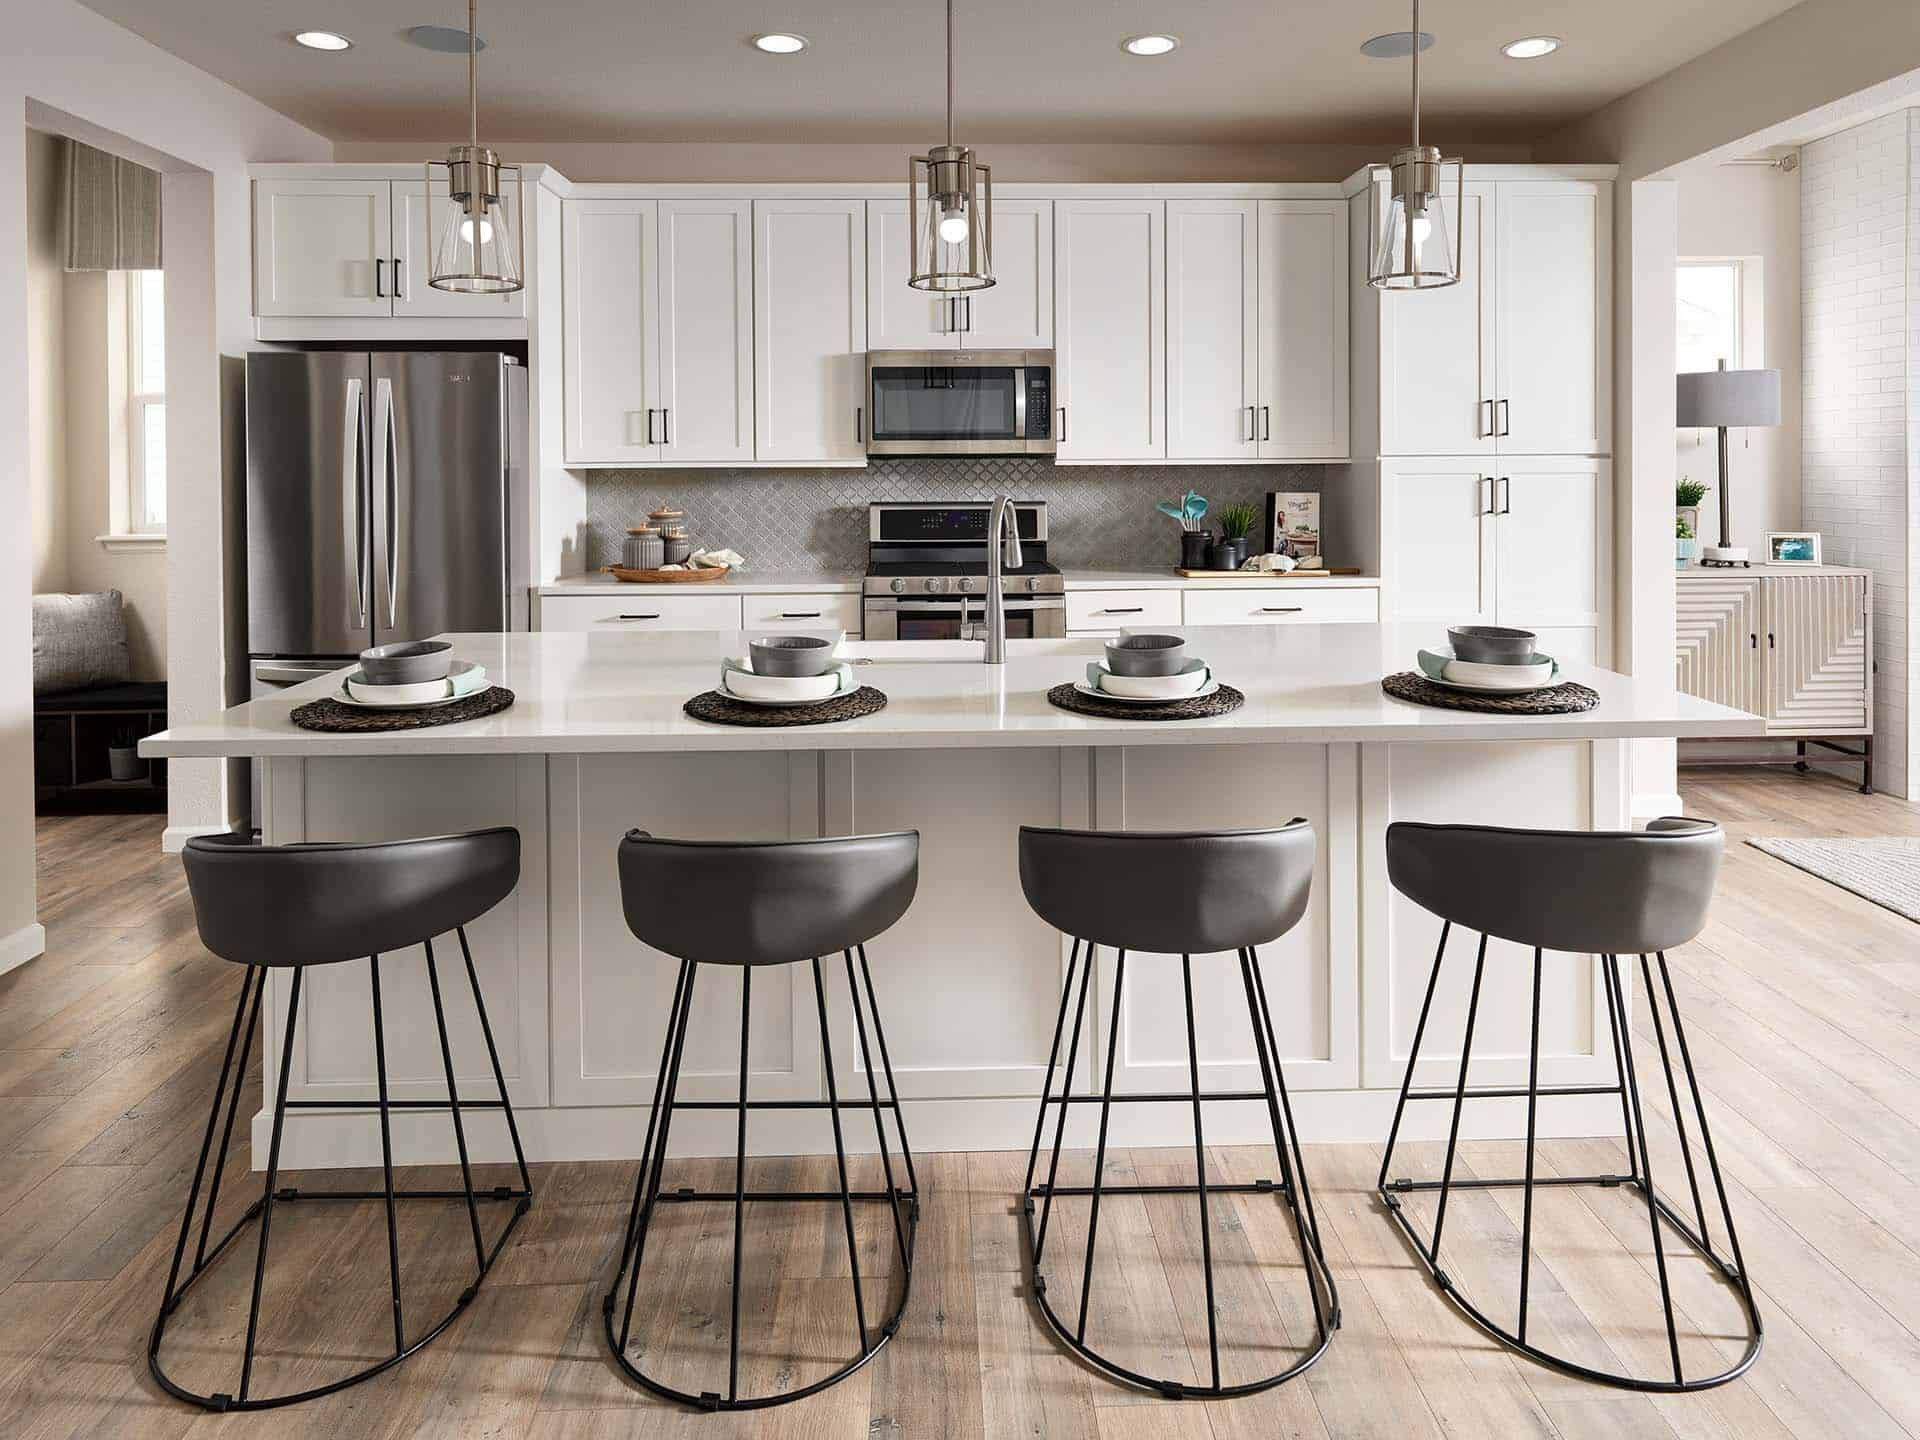 Kitchen featured in the Plan 3204 By Tri Pointe Homes in Denver, CO